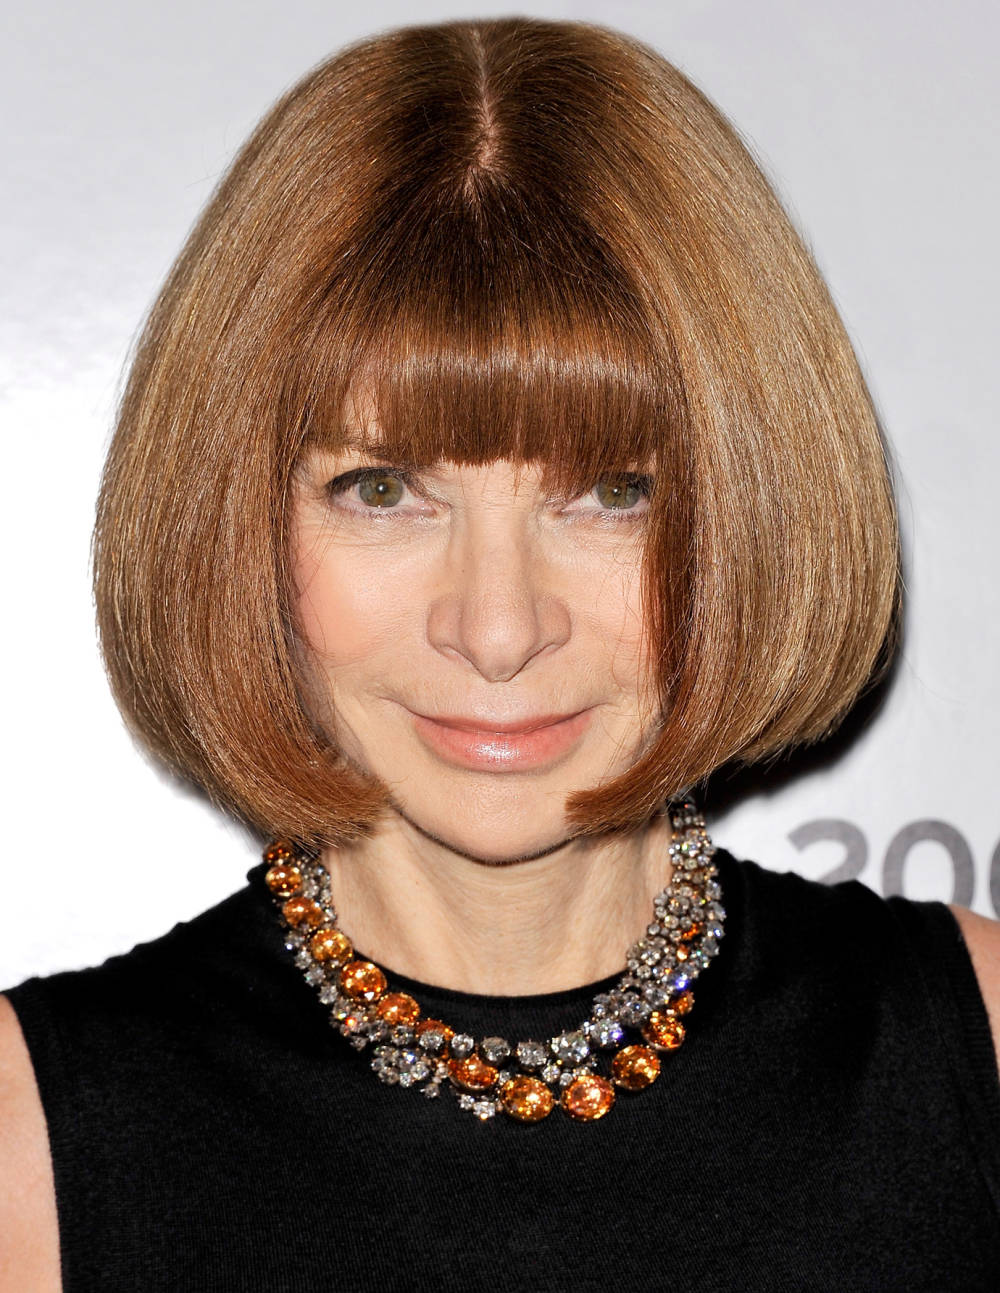 Anna Wintour Banned Ariana Grande From Wearing Ponytail: Fashion Icon: Anna Wintour